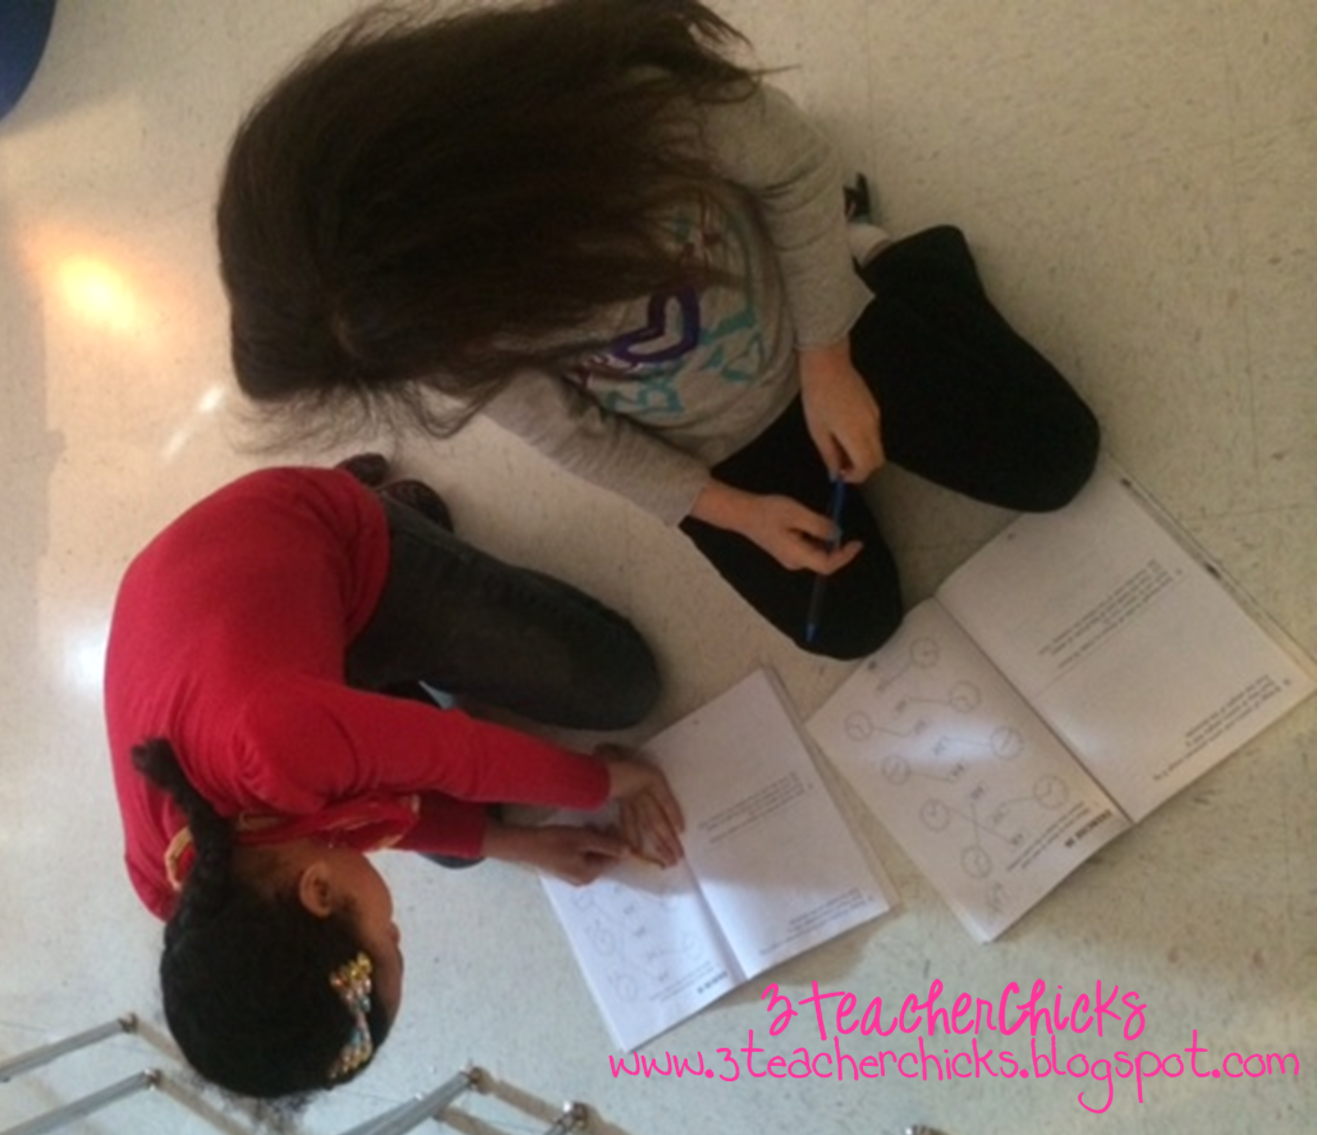 Do homework for others